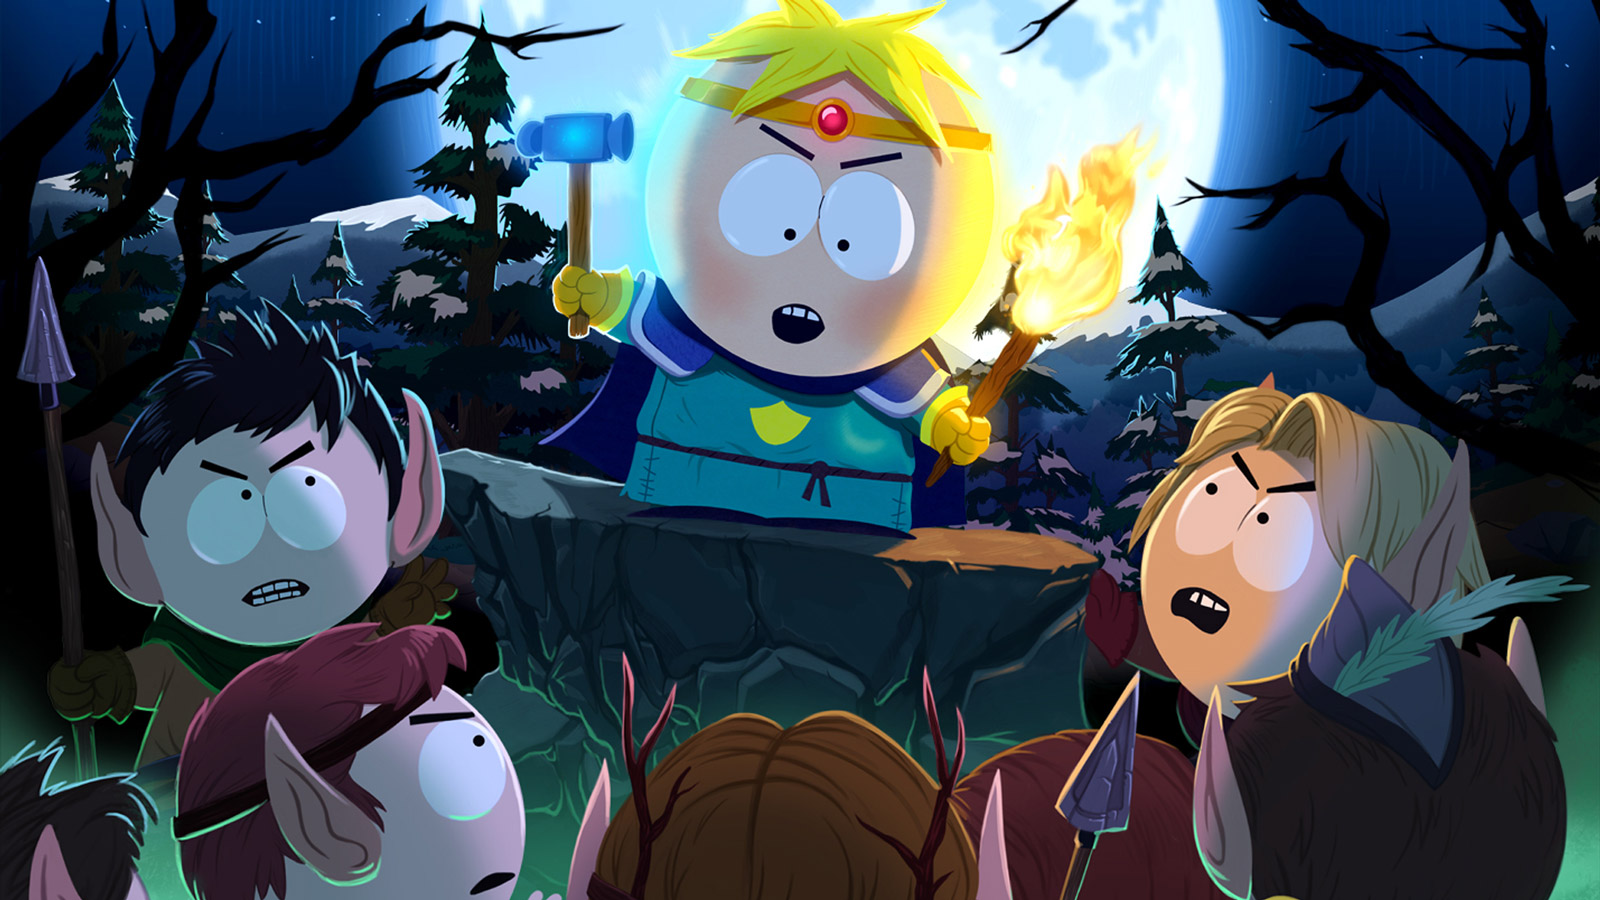 South Park: The Stick of Truth Wallpaper in 1600x900